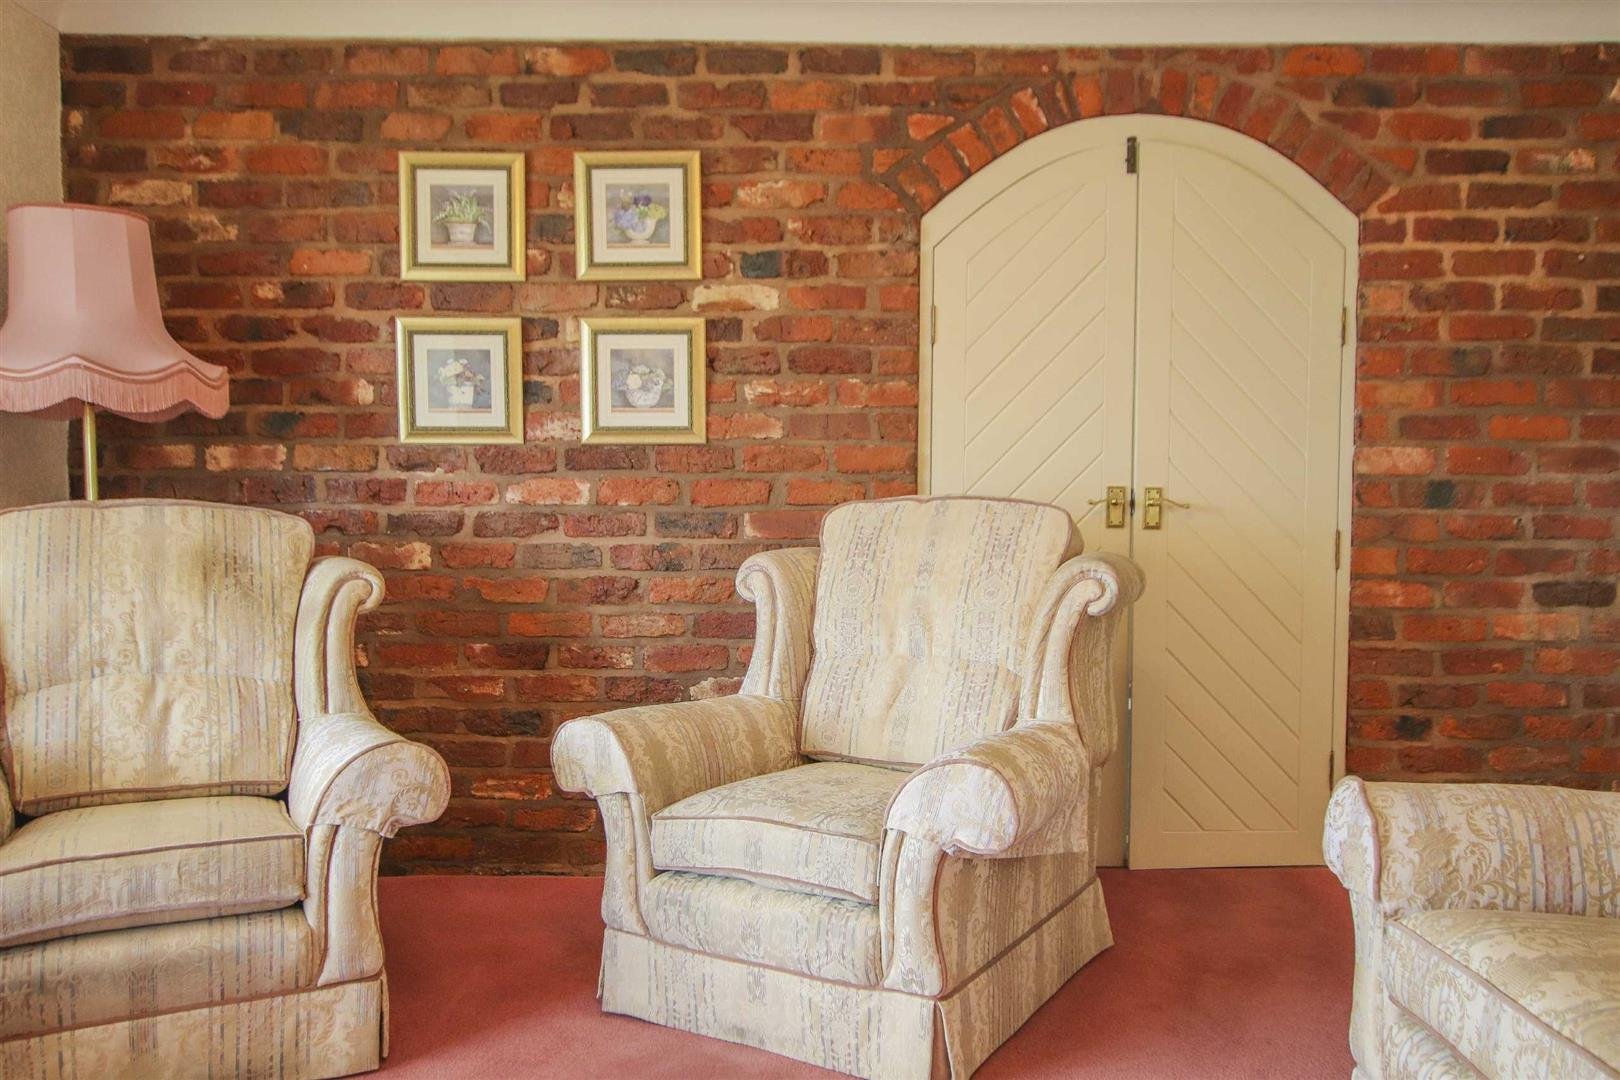 4 Bedroom Barn Conversion For Sale - p033135_16.jpg